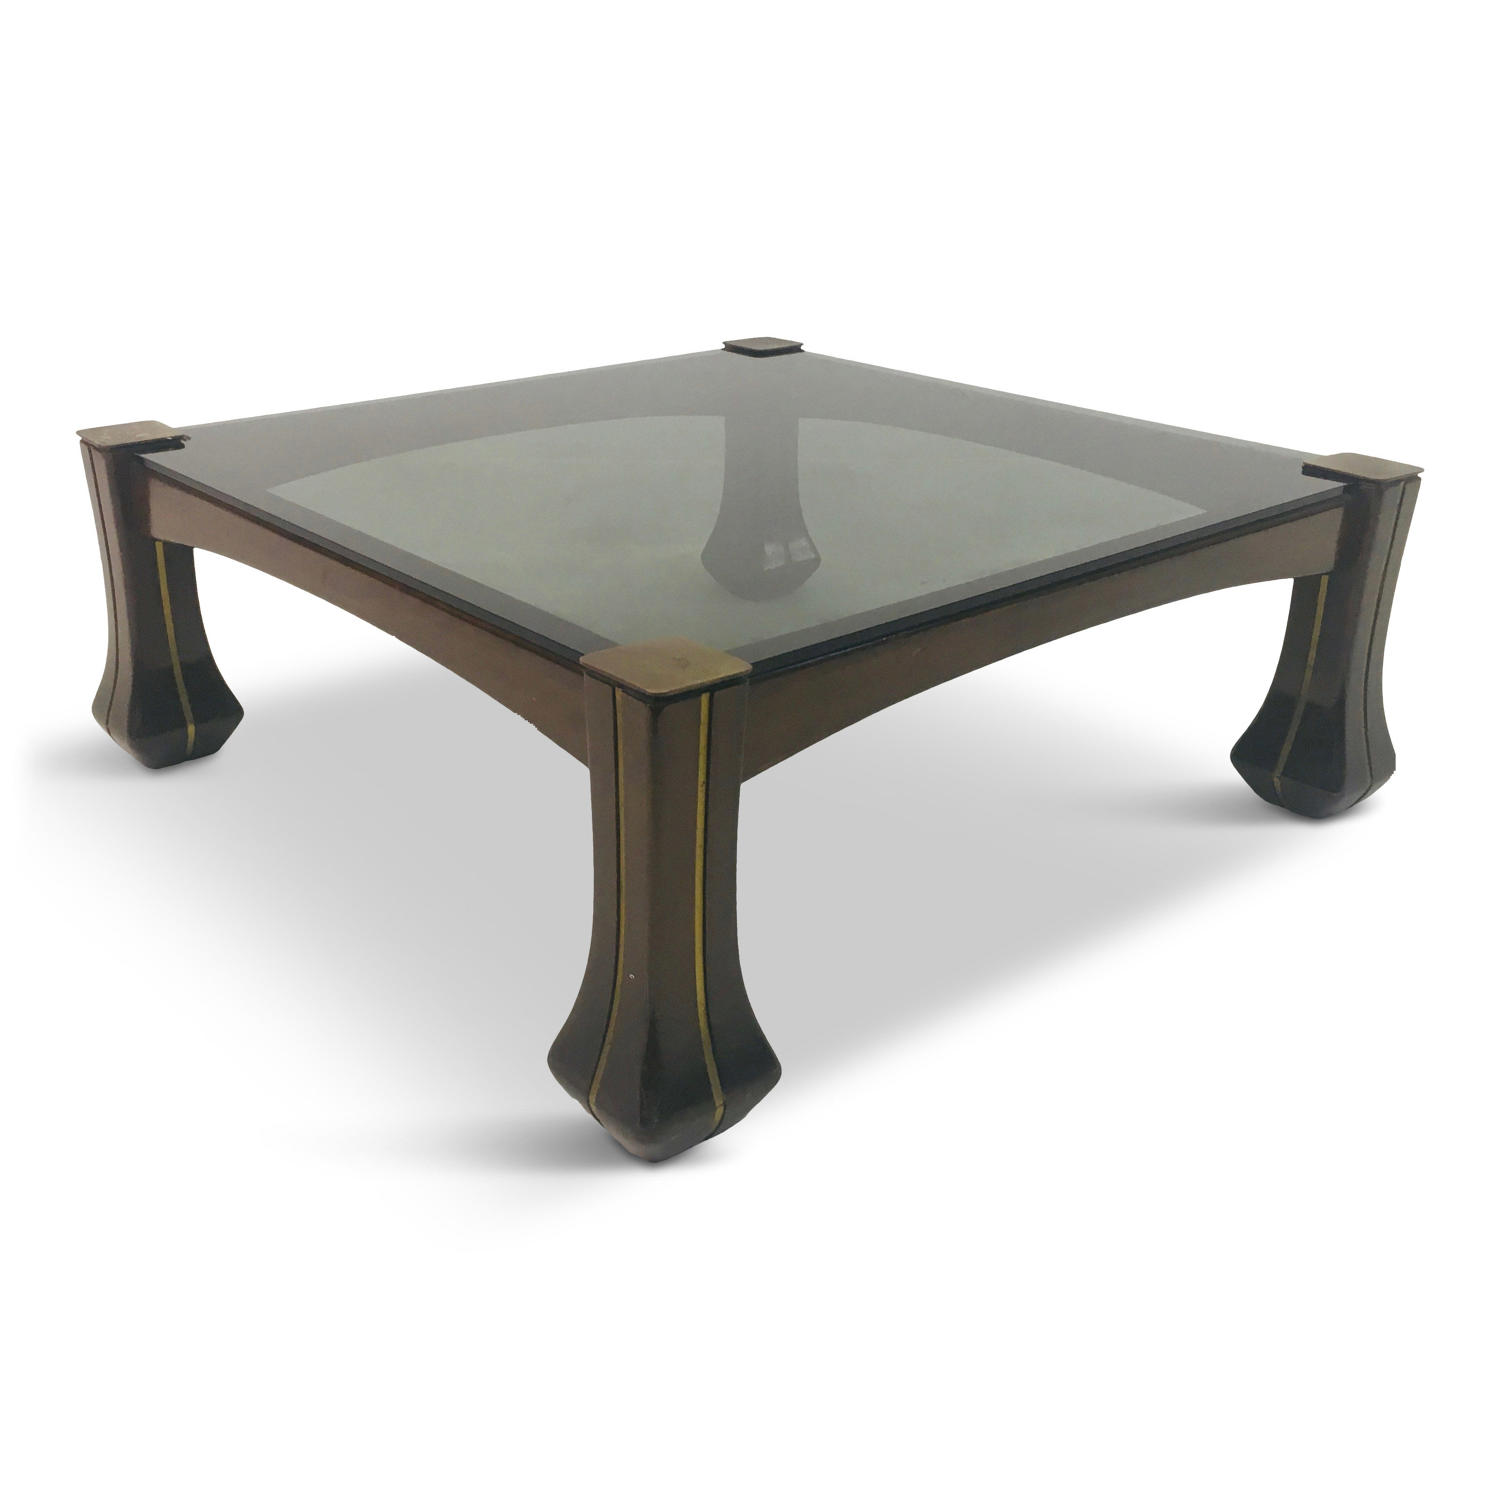 1960s Italian Ussaro coffee table by Luciano Frigerio